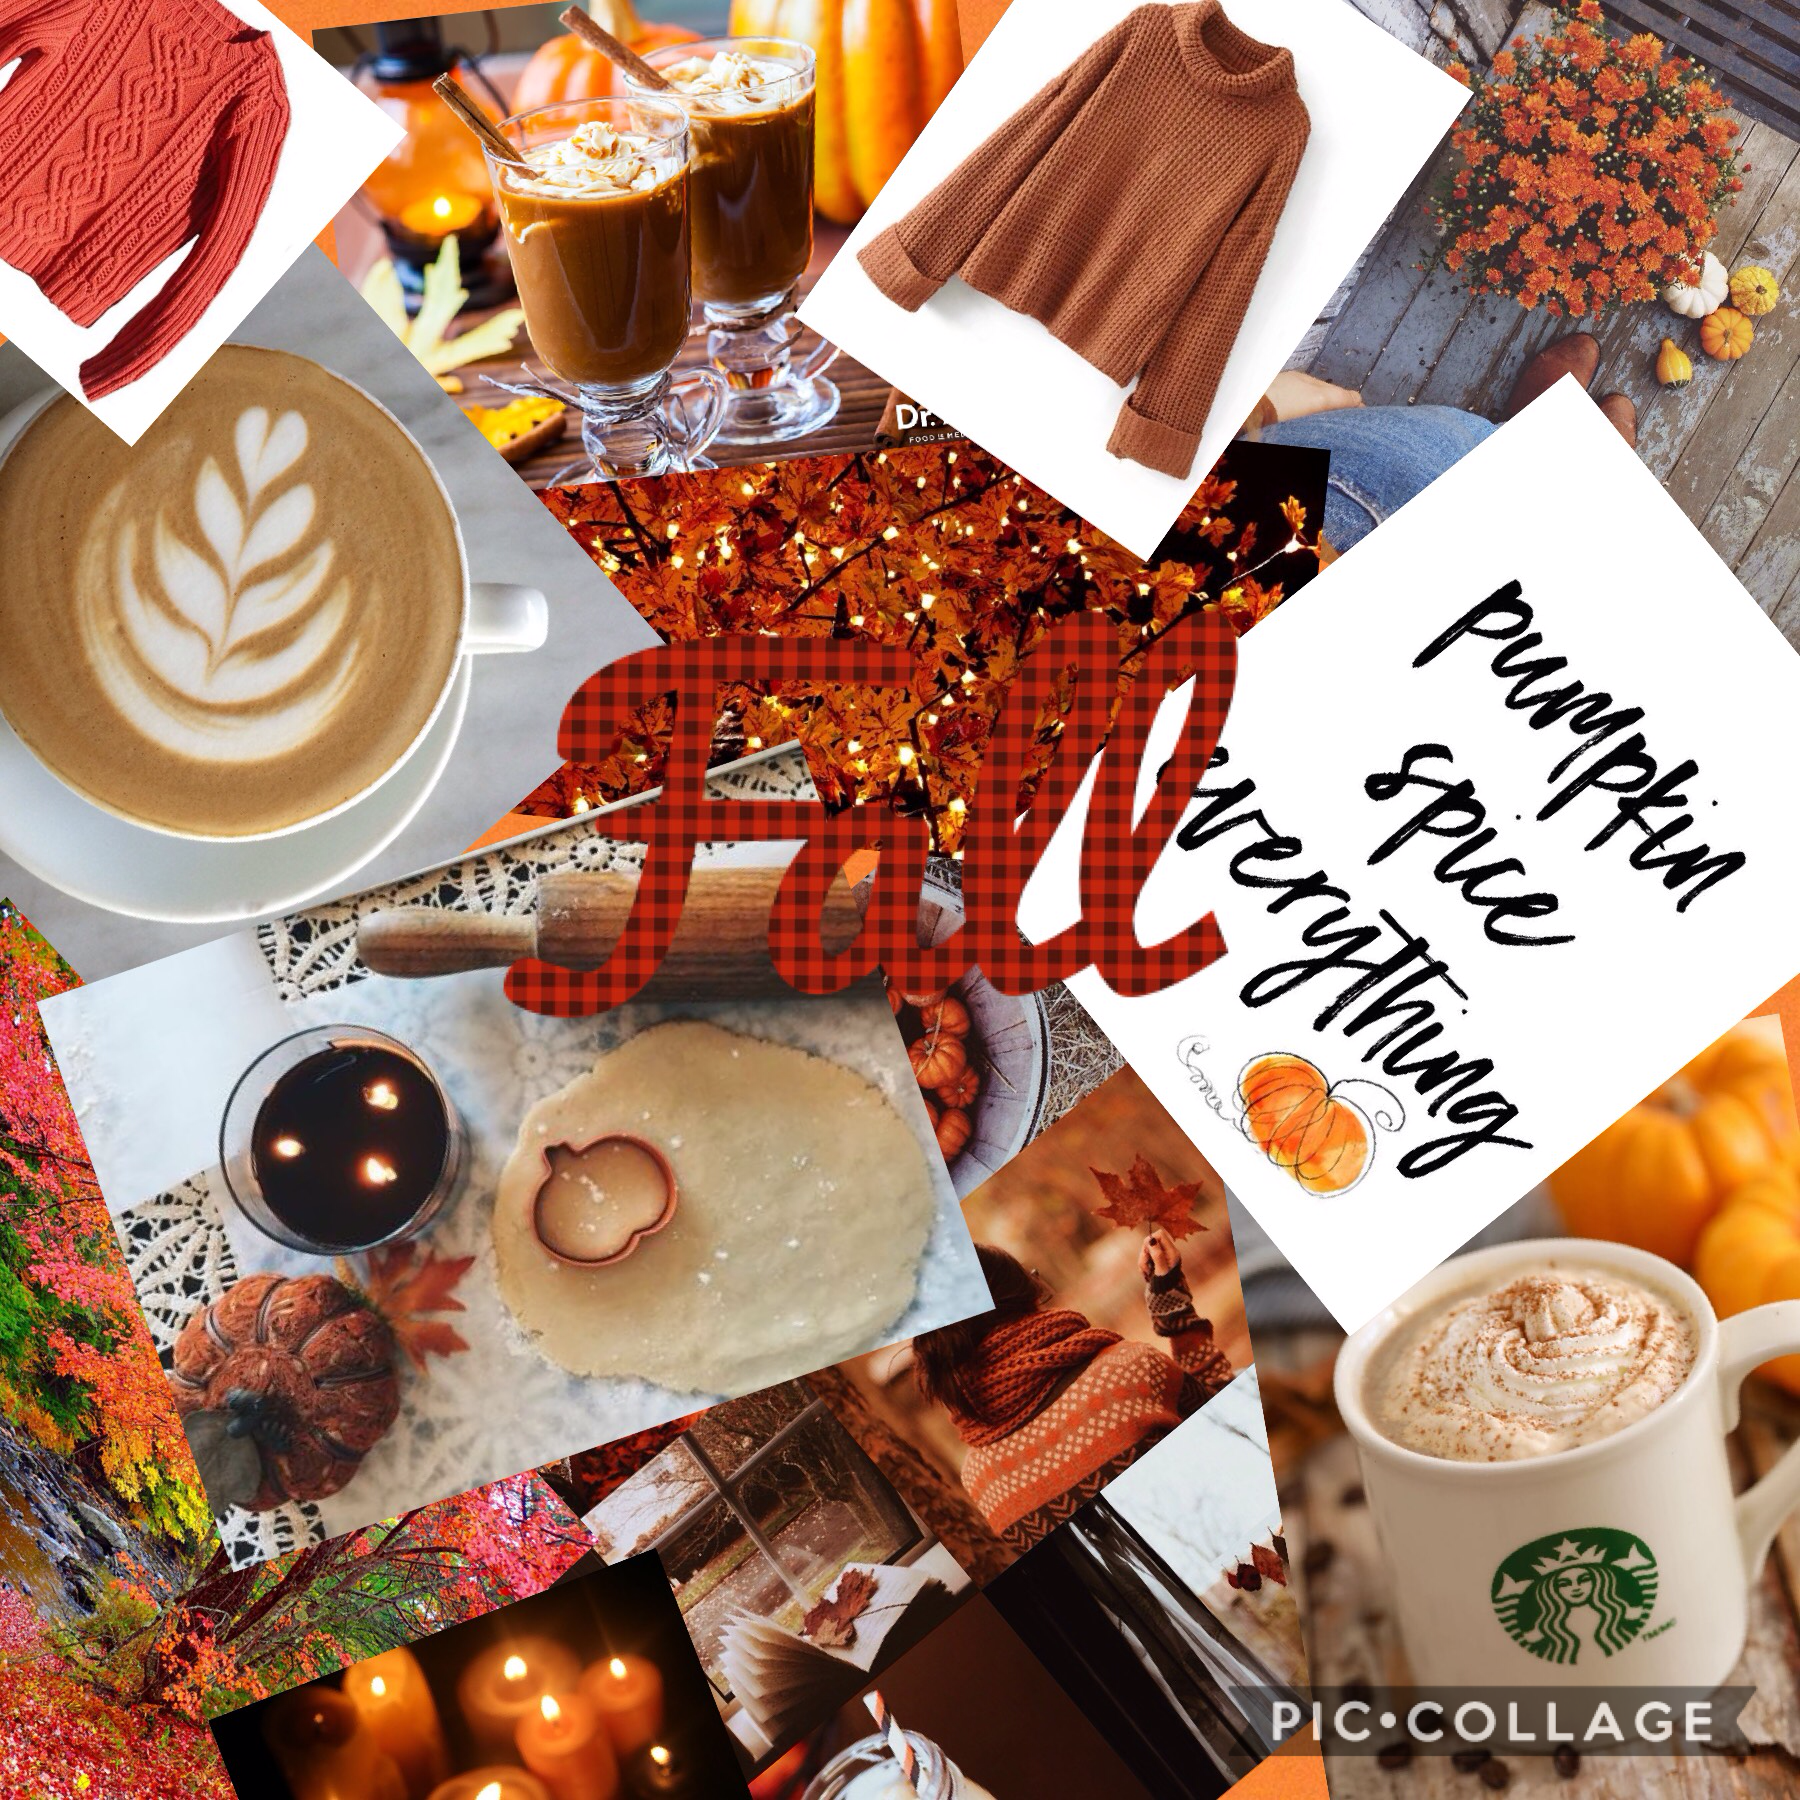 🎃I just love fall 🍂how bout you🎃